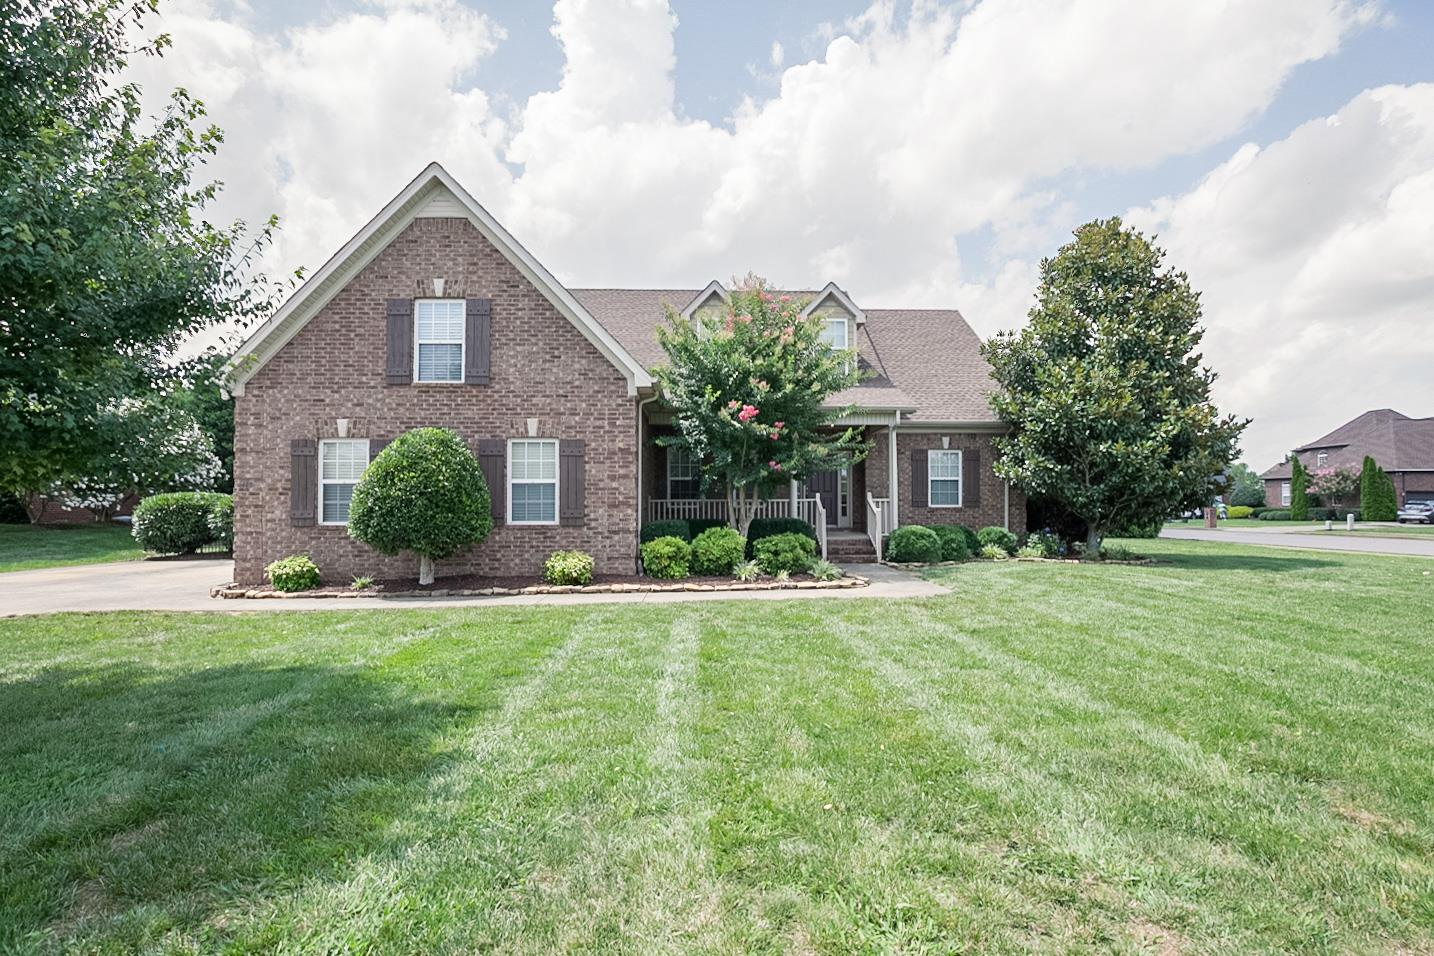 1475 Winterberry Dr 37130 - One of Murfreesboro Homes for Sale